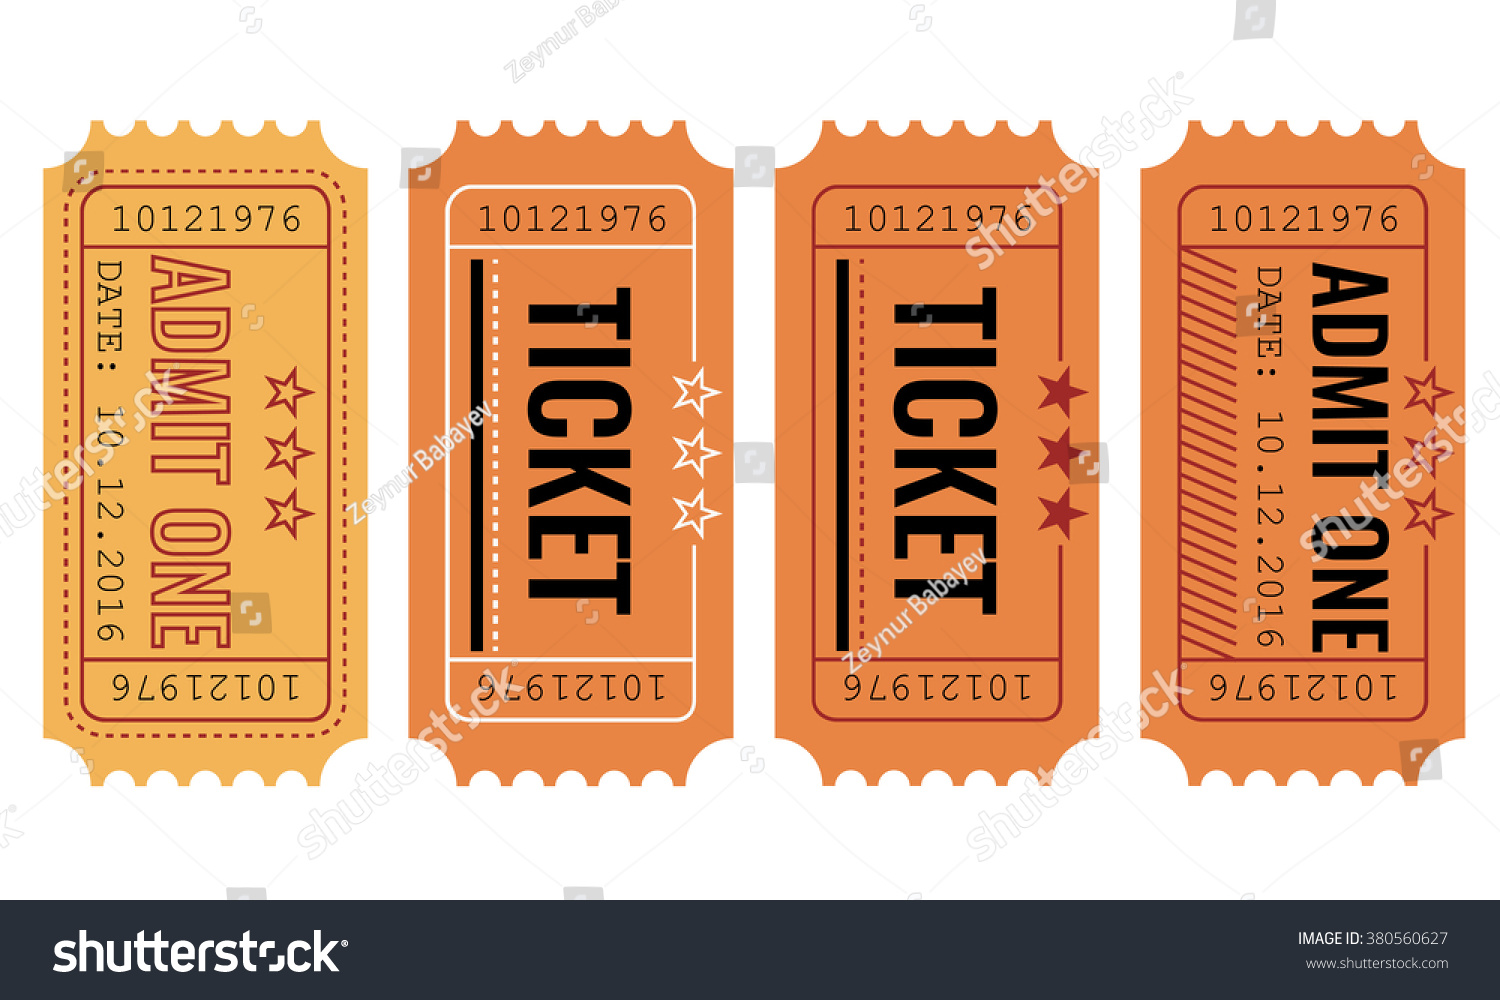 ticket samples 1 to 1 meeting template teacher resumes templates vector set of vintage paper admit one and ticket samples icon stock vector vector set of vintage paper admit one and ticket samples icon 380560627 stock